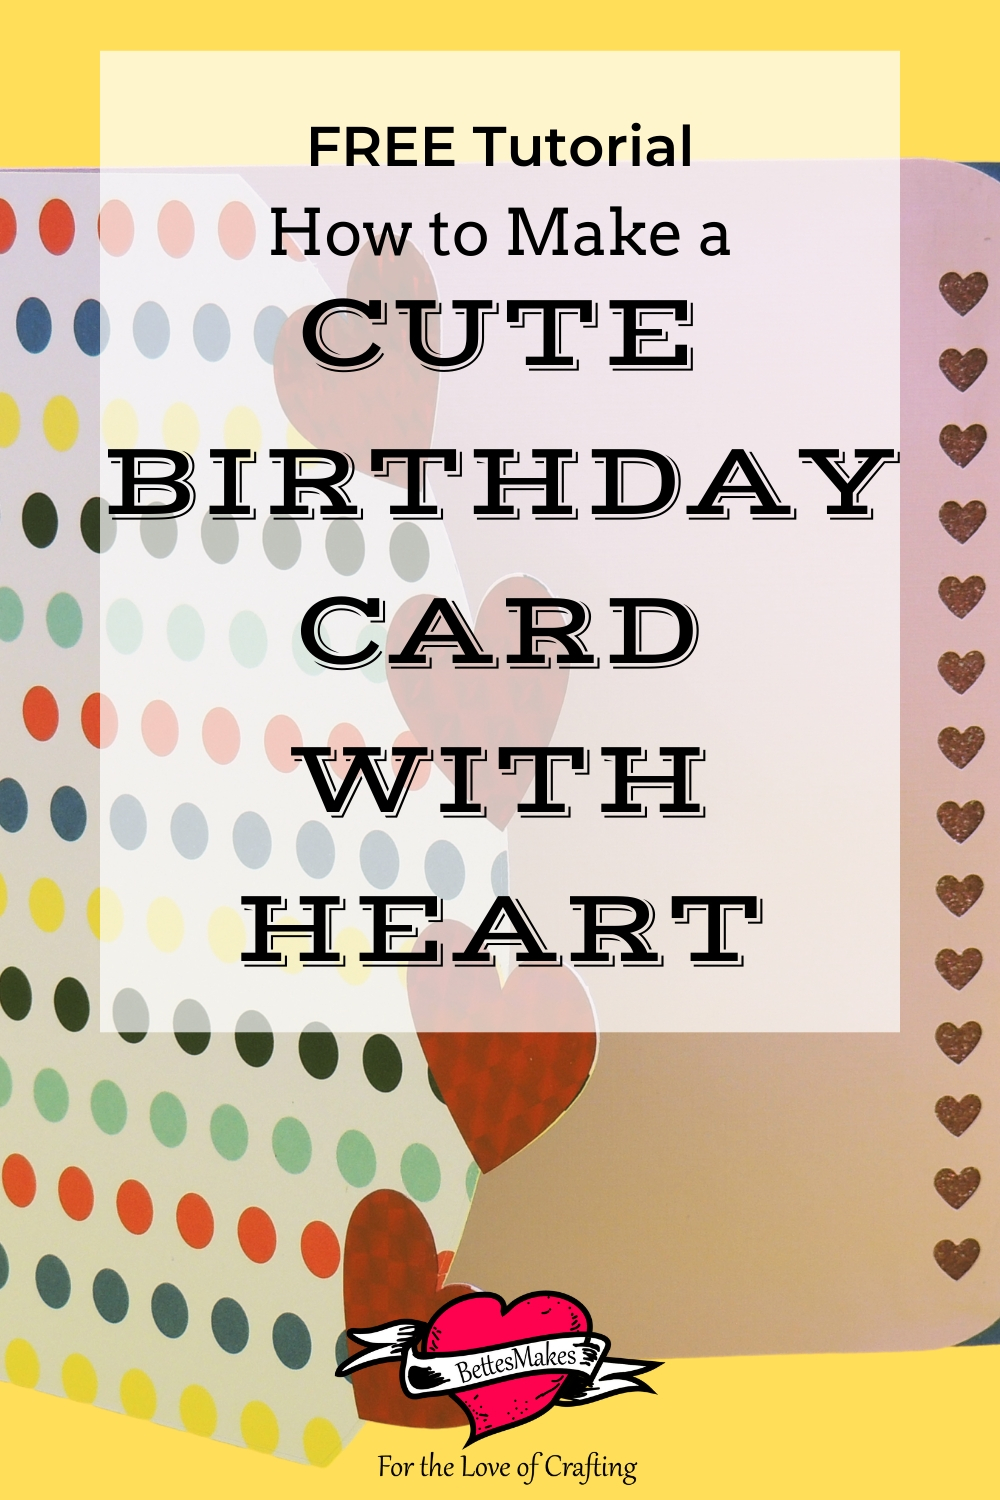 How to Make a Cute Birthday Card with Heart